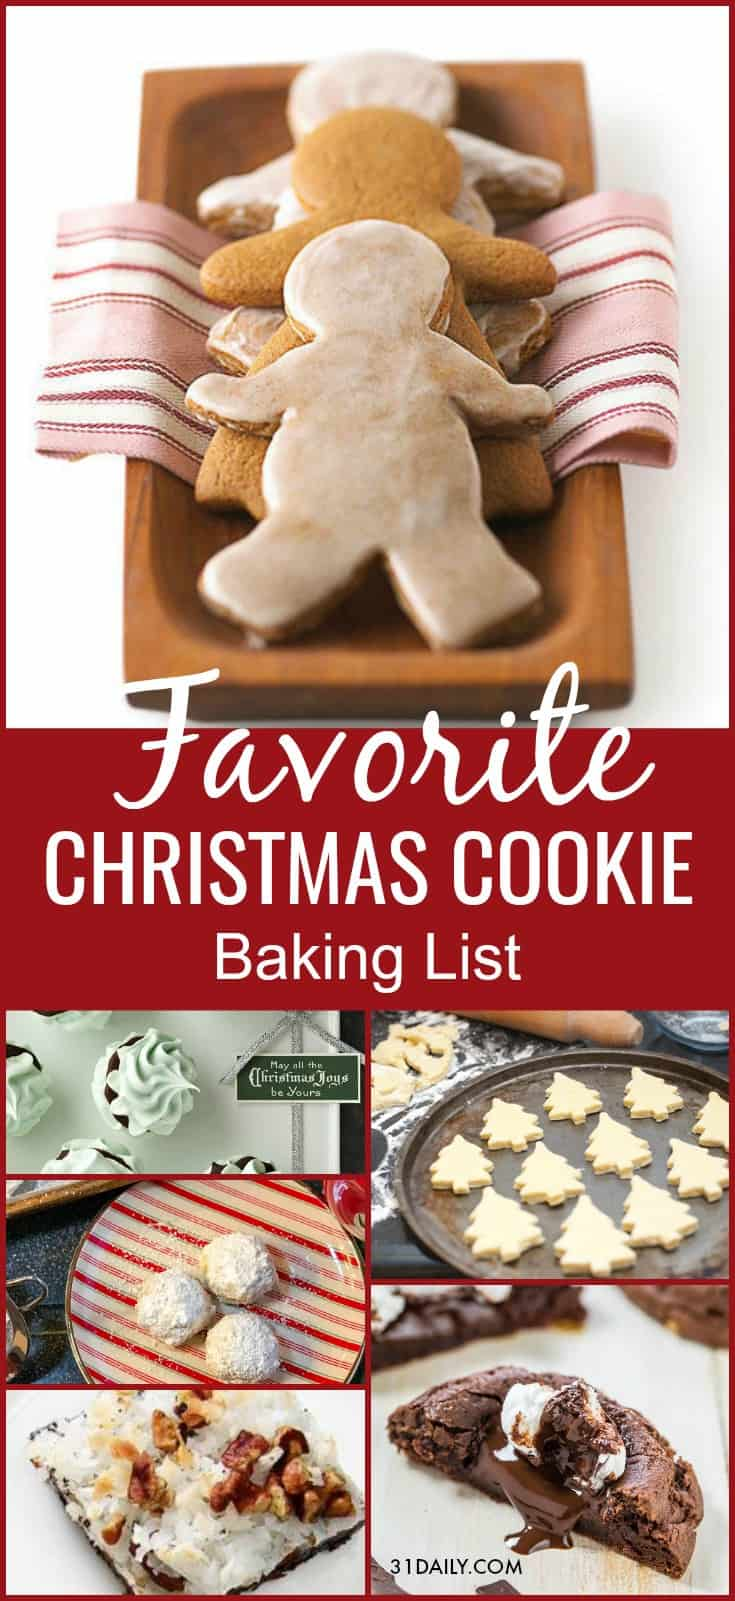 Favorite Christmas Cookies Baking List | 31Daily.com